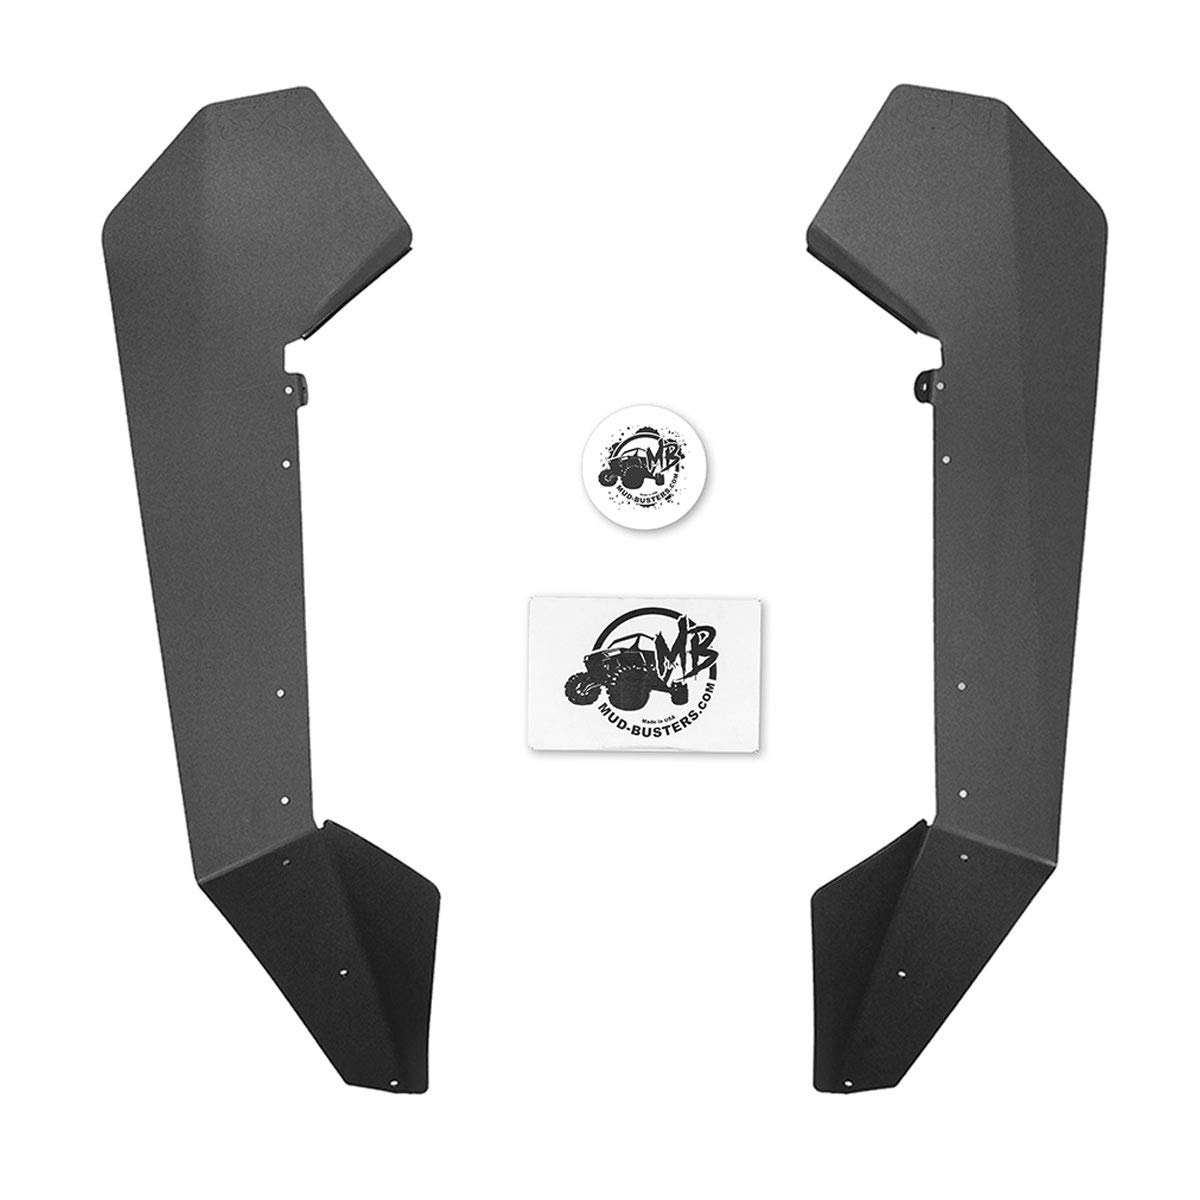 Complete Kit MudBusters Max Coverage Rear and Front Fender Flares with Hardware for 2020 Polaris RZR XP-Pro